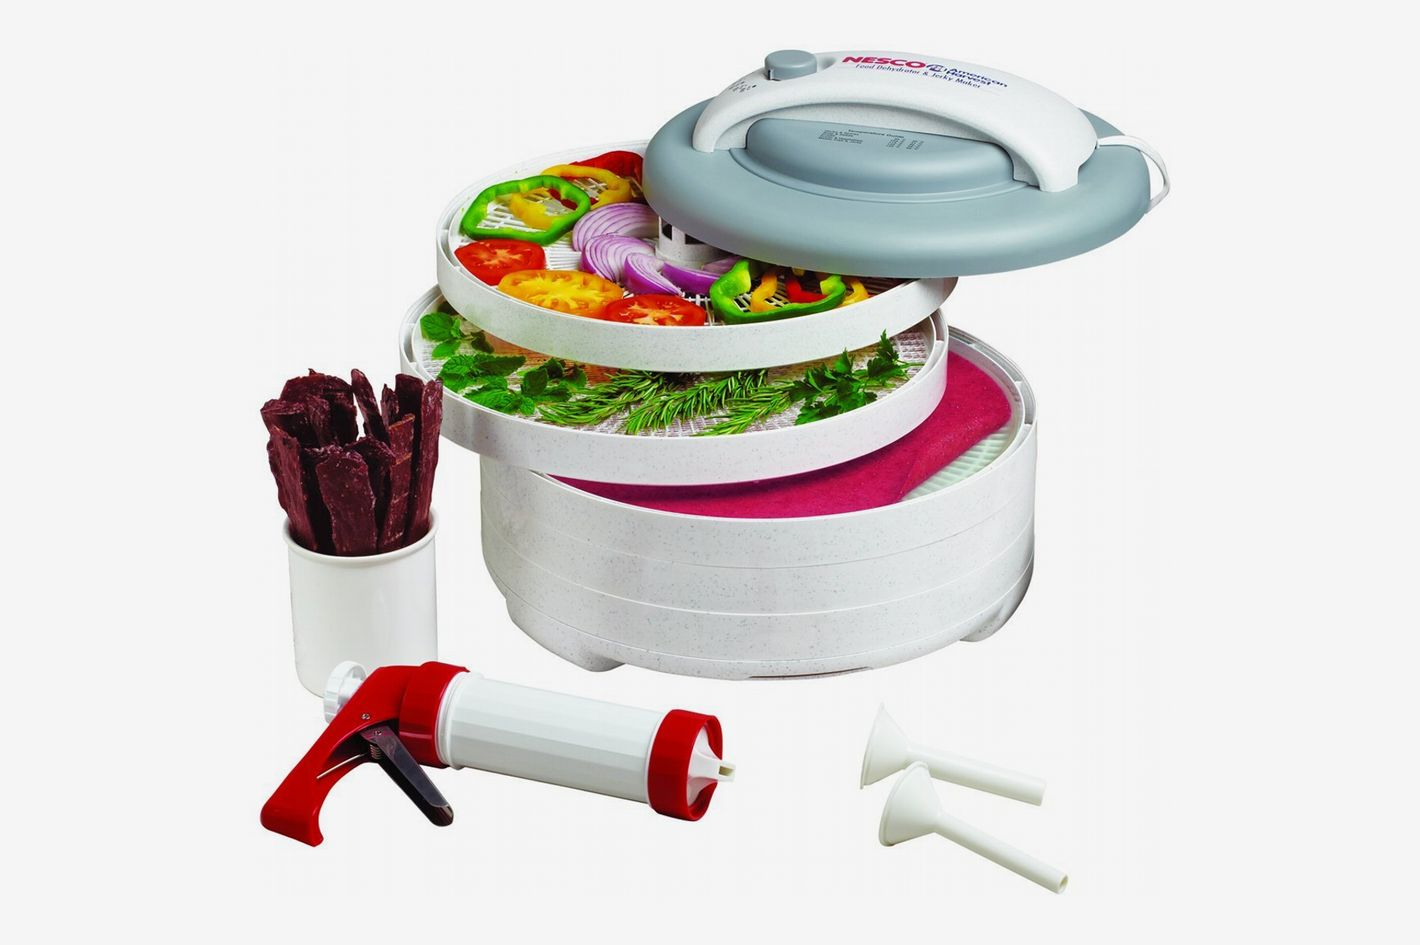 NESCO FD-61WHC, Snackmaster Express Food Dehydrator All-in-One Kit with Jerky Gun